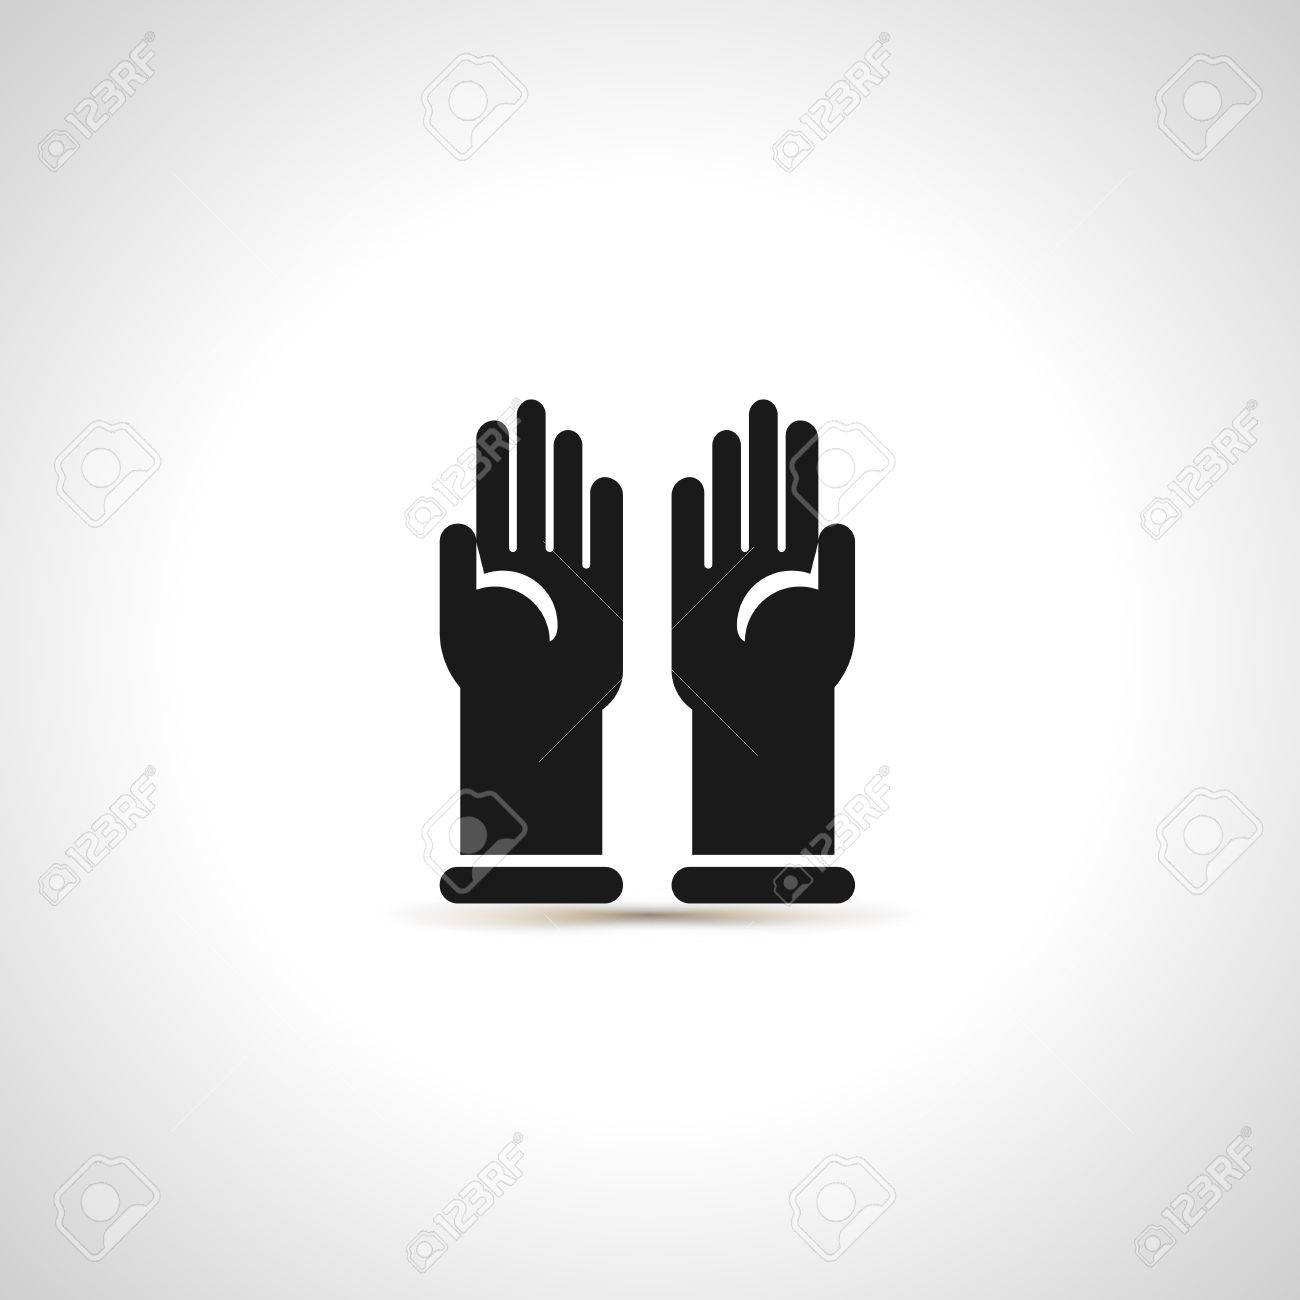 Simple black icon of pair latex protective gloves royalty free simple black icon of pair latex protective gloves stock vector 82041692 biocorpaavc